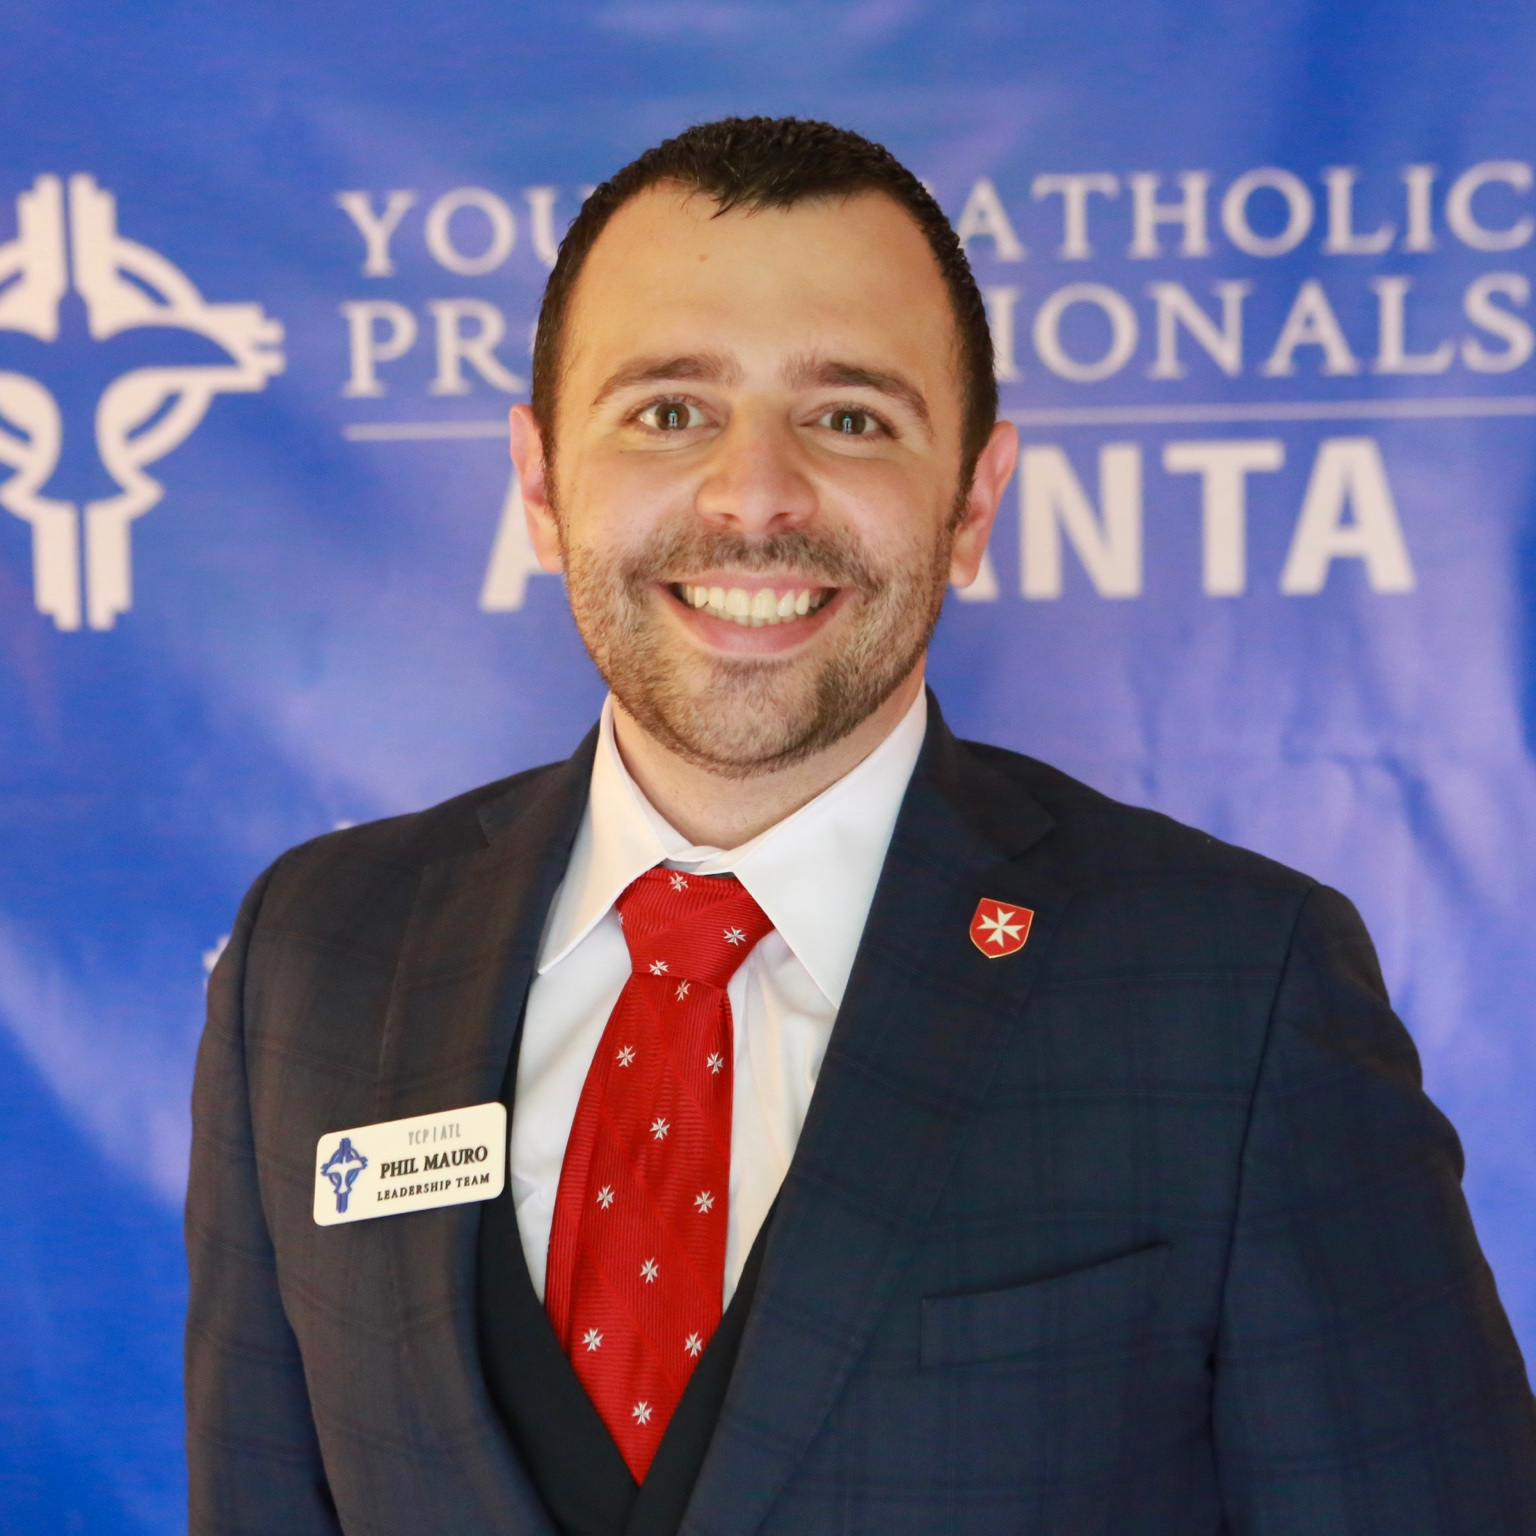 Phil Mauro - VP & Director of Outreach